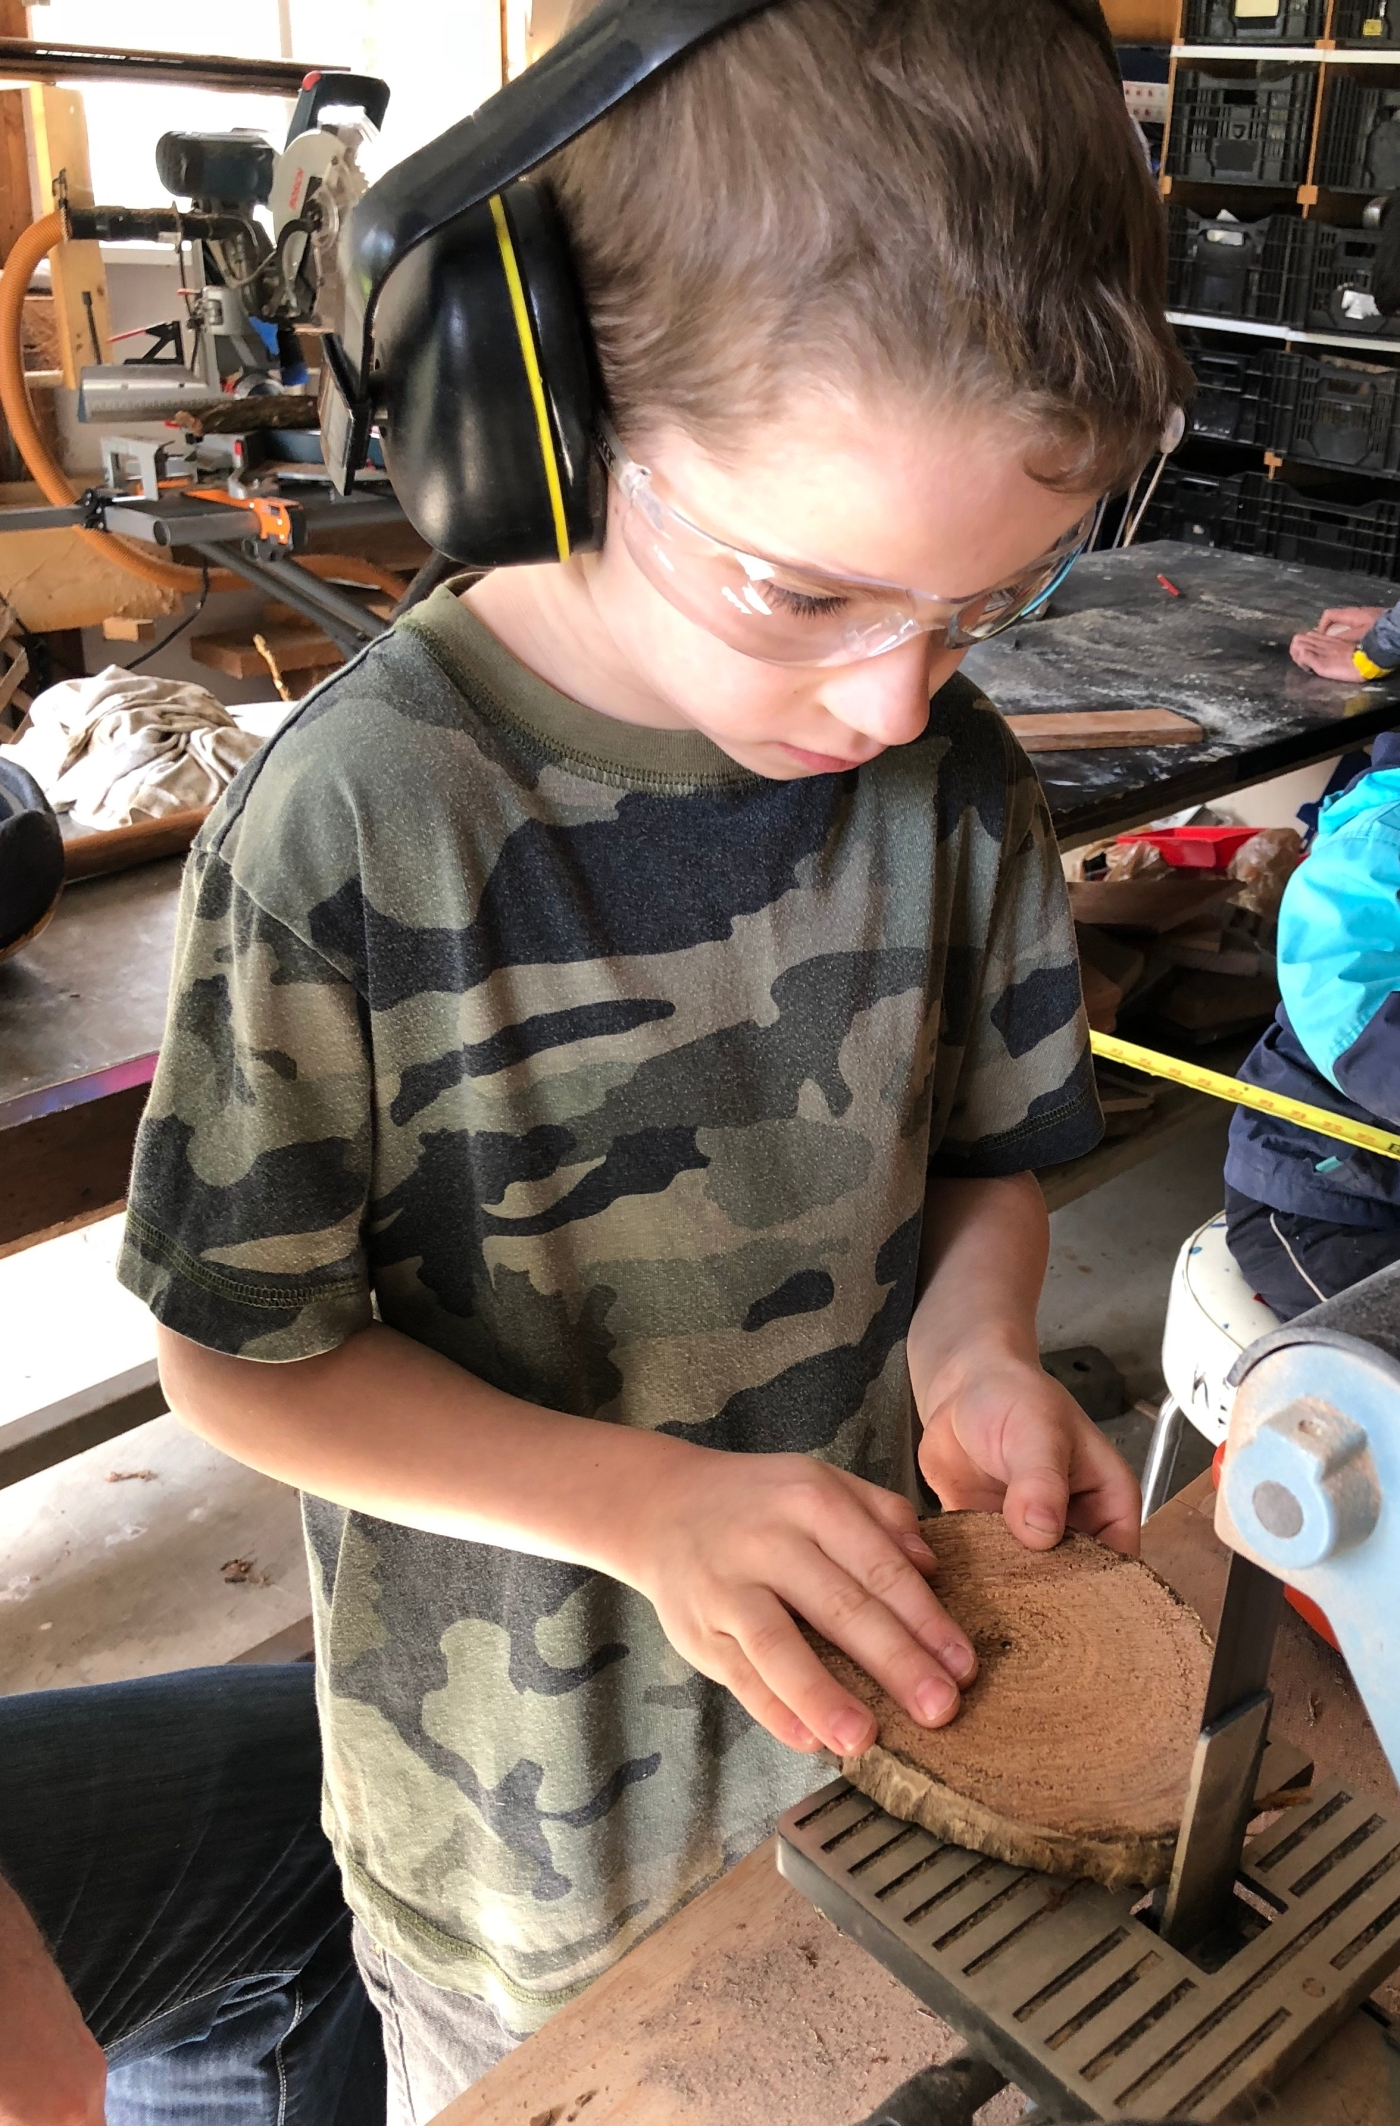 Boy wearing safety glasses and ear protection sanding a piece of wood on electric sander.